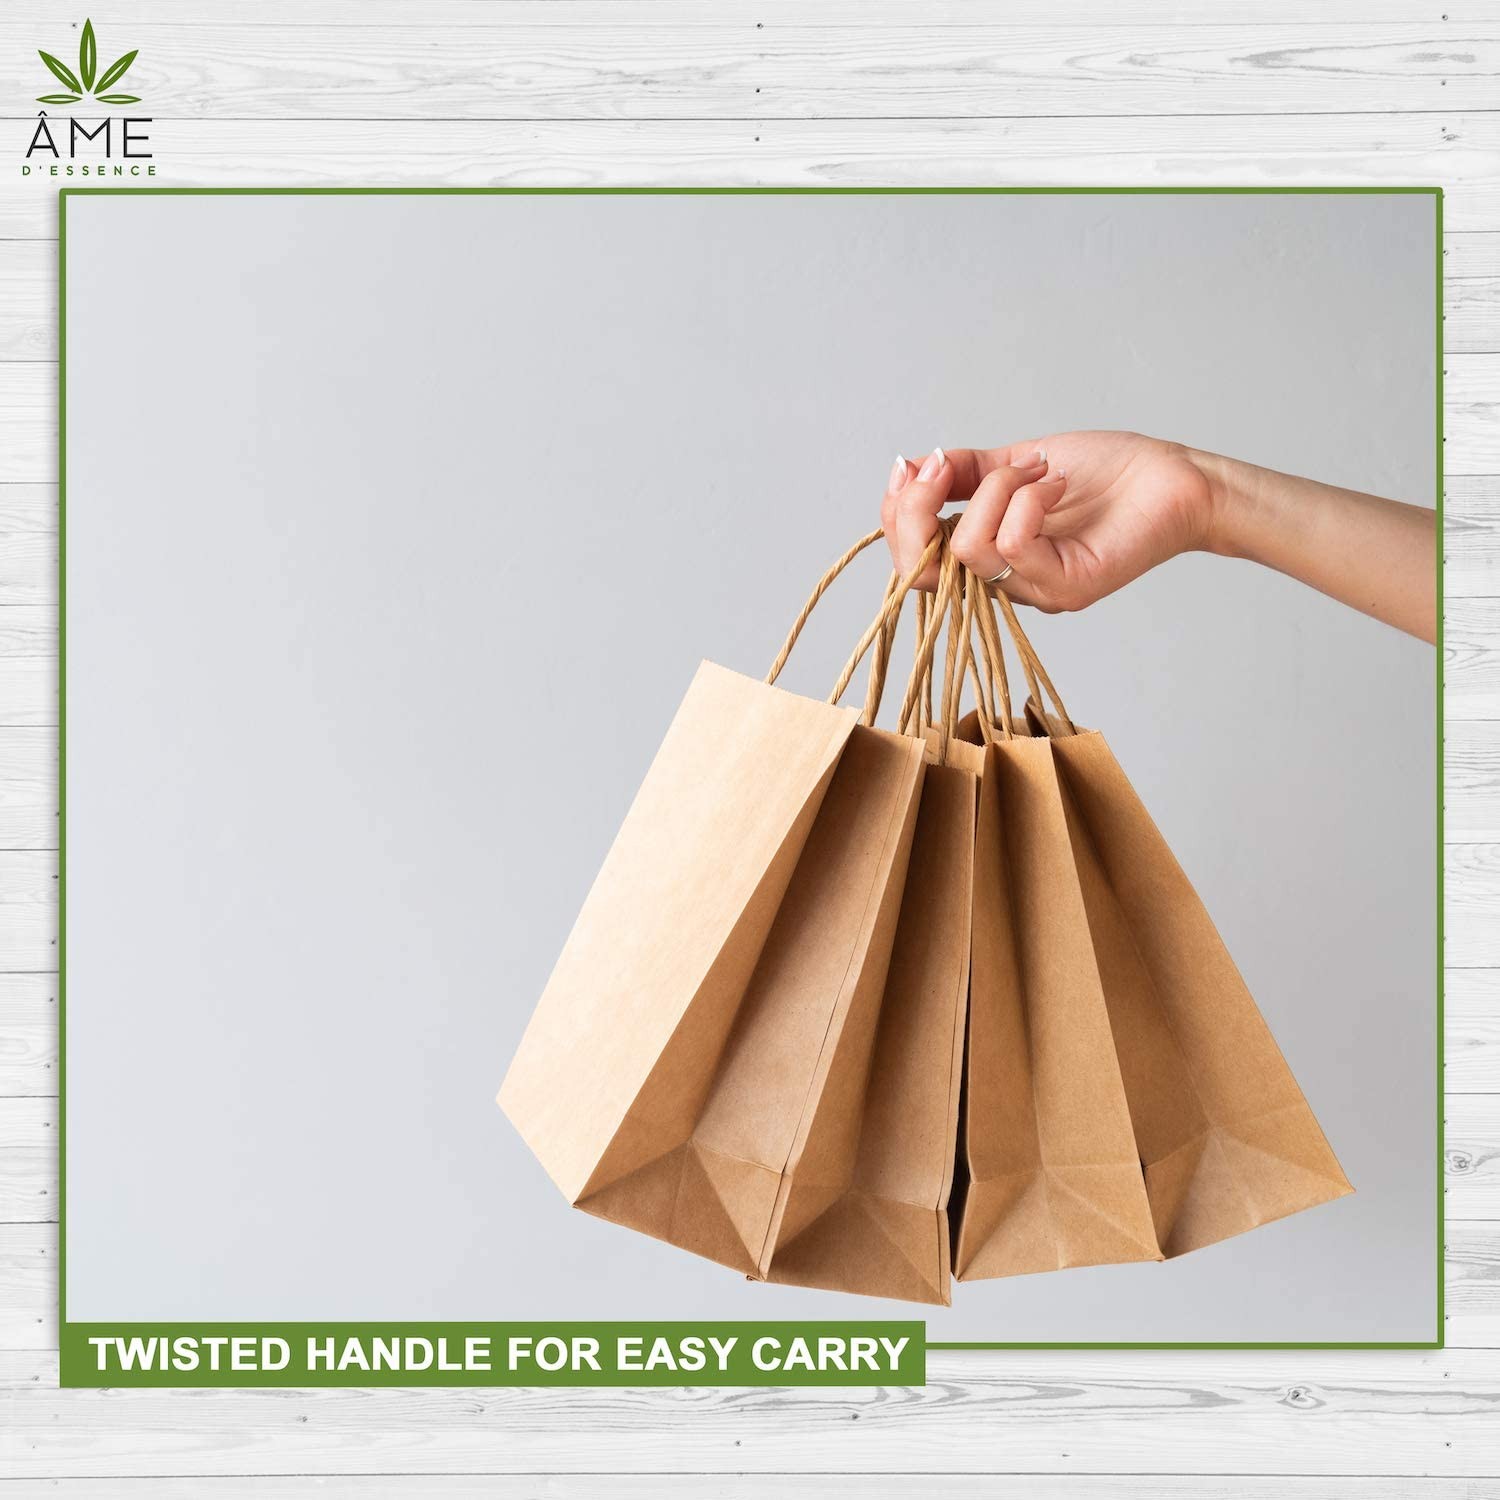 Kraft Brown Paper Bags w//Handles Reusable Grocery Bags Great Gift Bag Recyclable Shopping Bags Small Size 8.0L x 4.5W x 10.0H Eco-Friendly /& Biodegradable 25 pcs